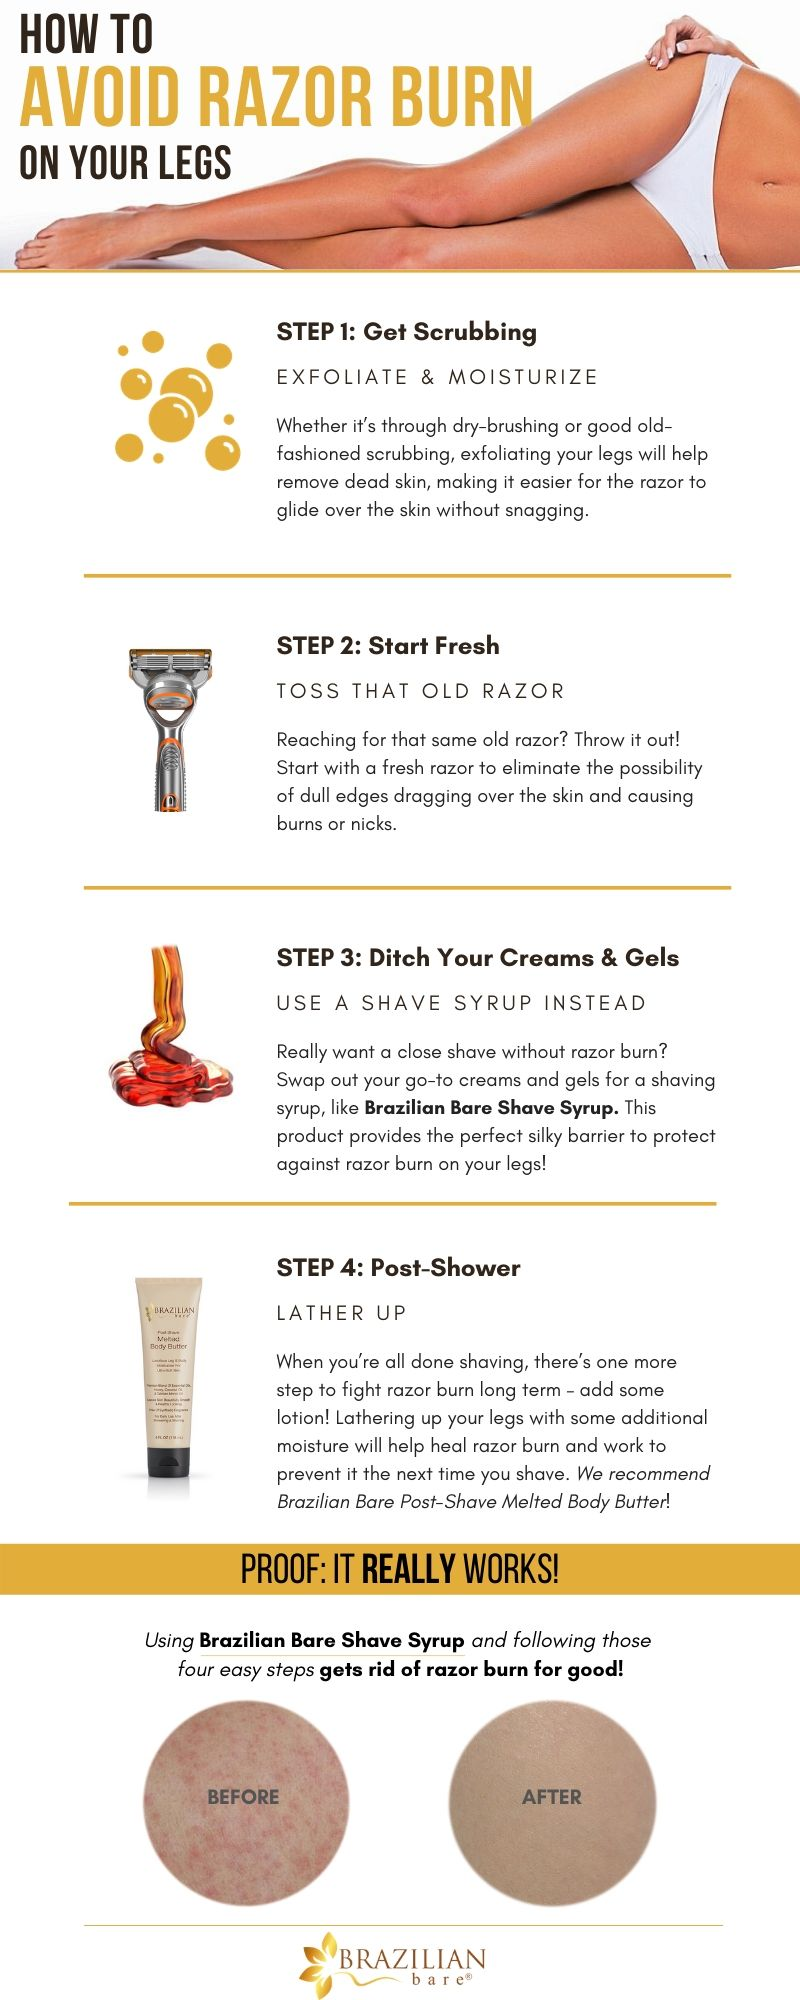 How To Avoid Razor Burn On Legs Infographic